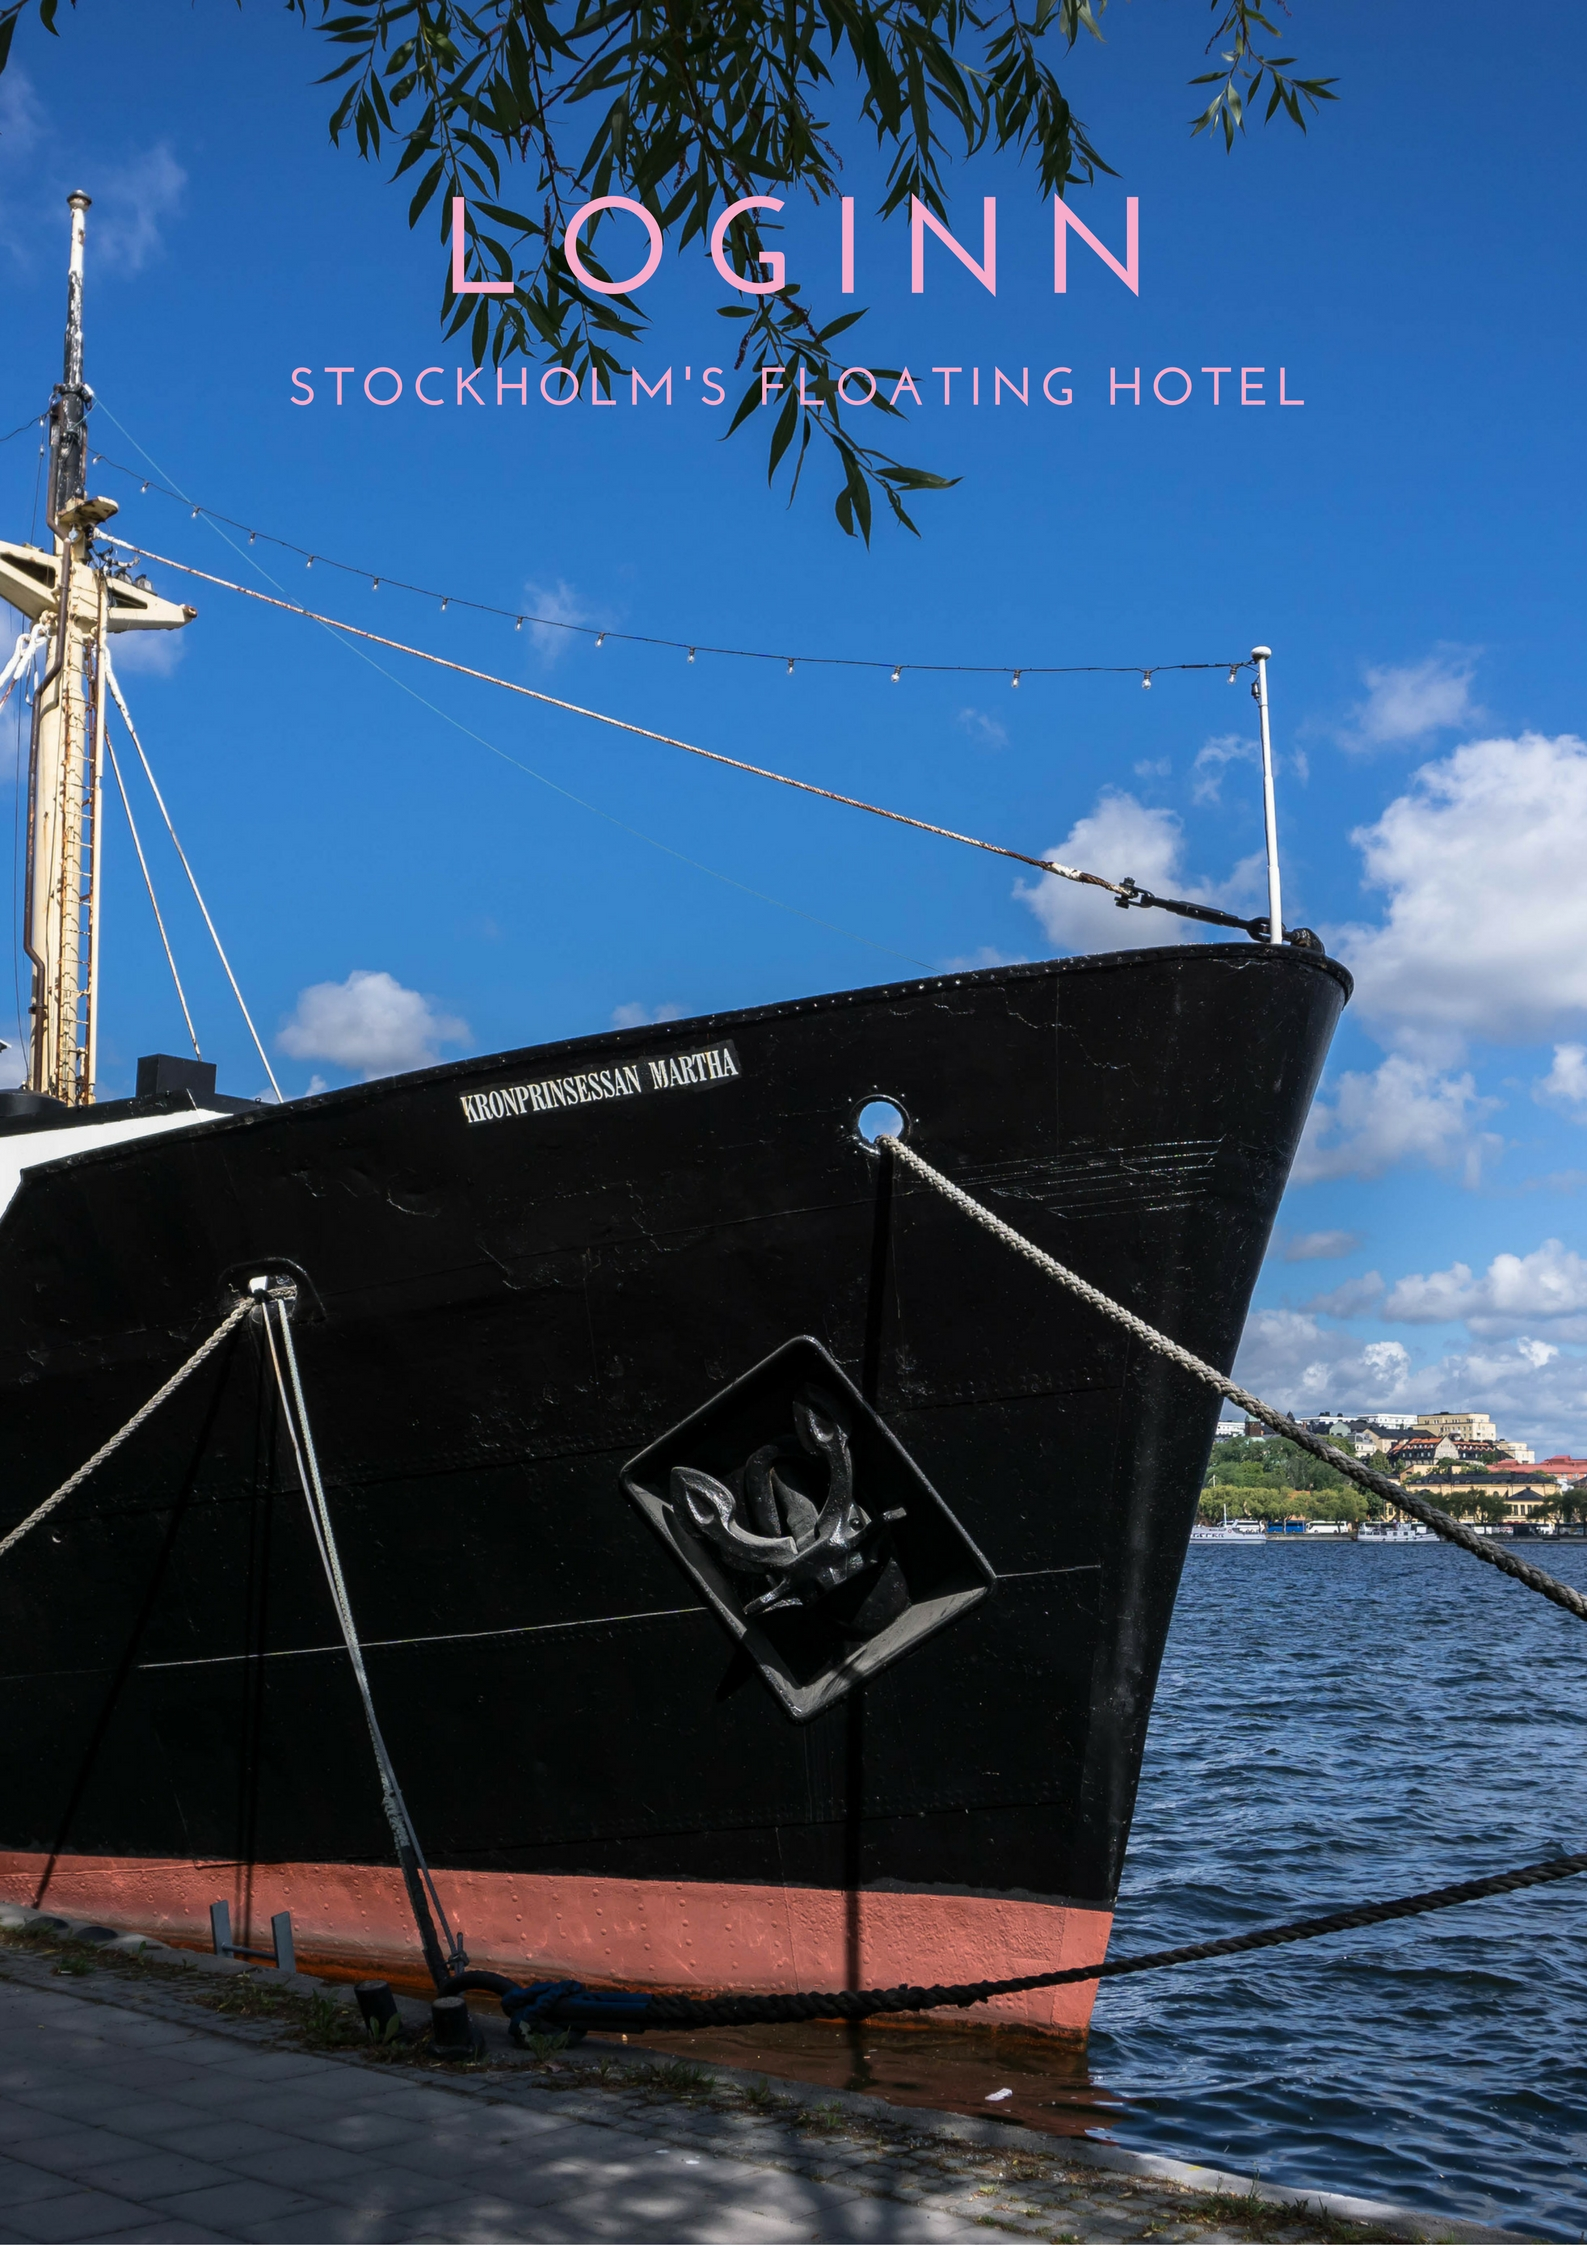 loginn a floating hotel in stockholm runaway brit. Black Bedroom Furniture Sets. Home Design Ideas